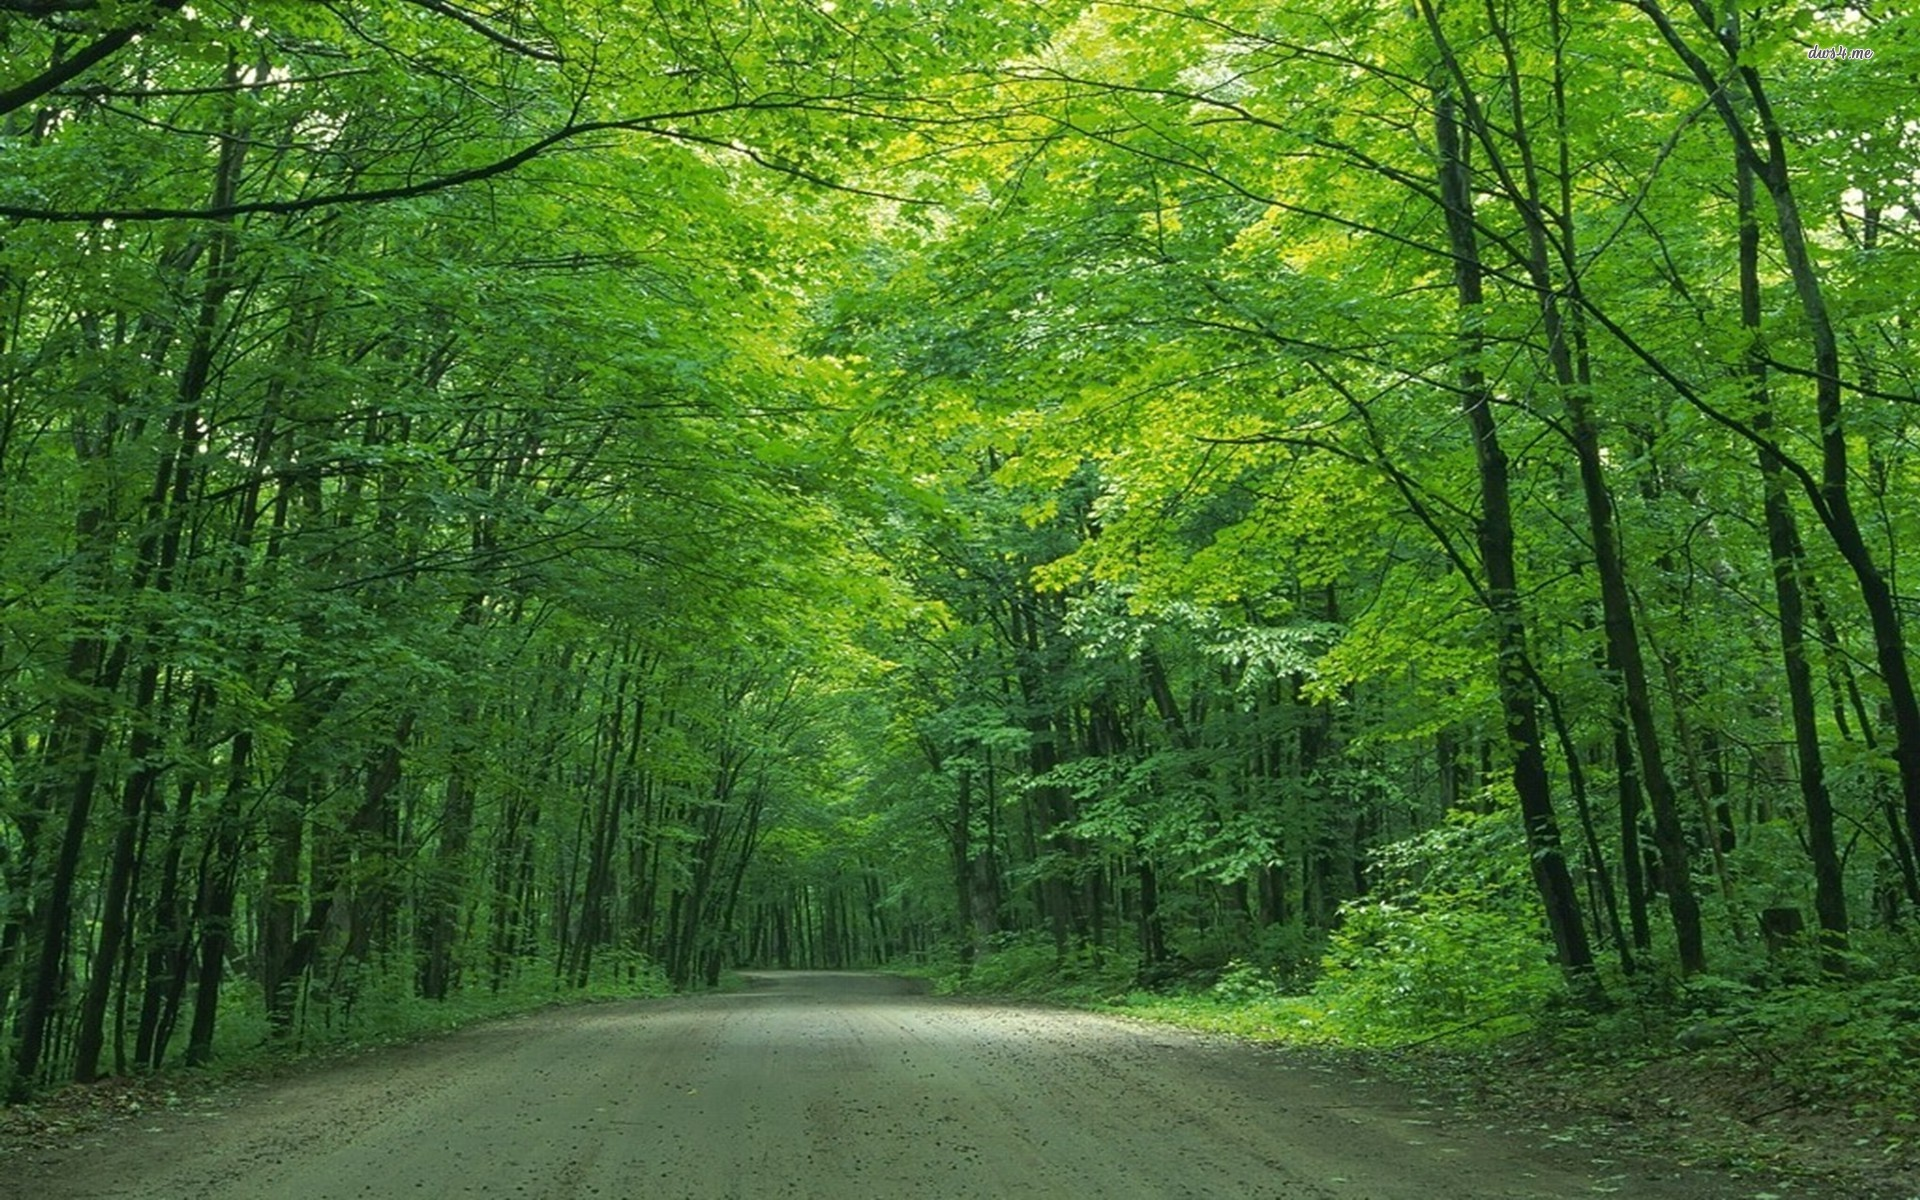 free photo green tree road rainforest park free download jooinn